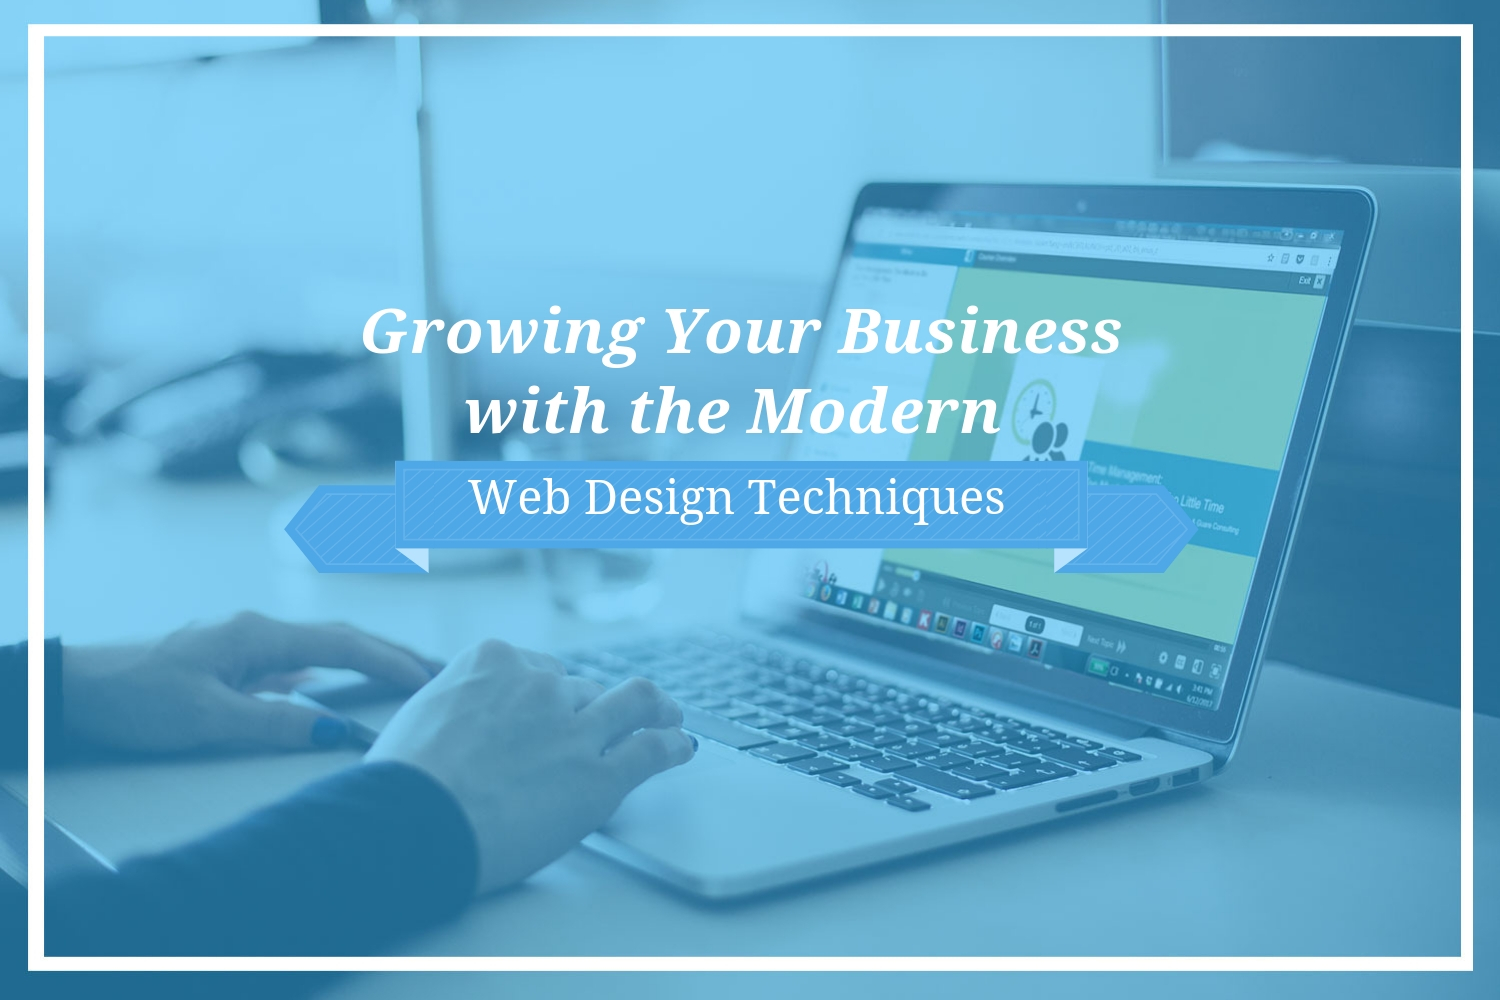 Growing Your Business with the Modern Web Design Techniques